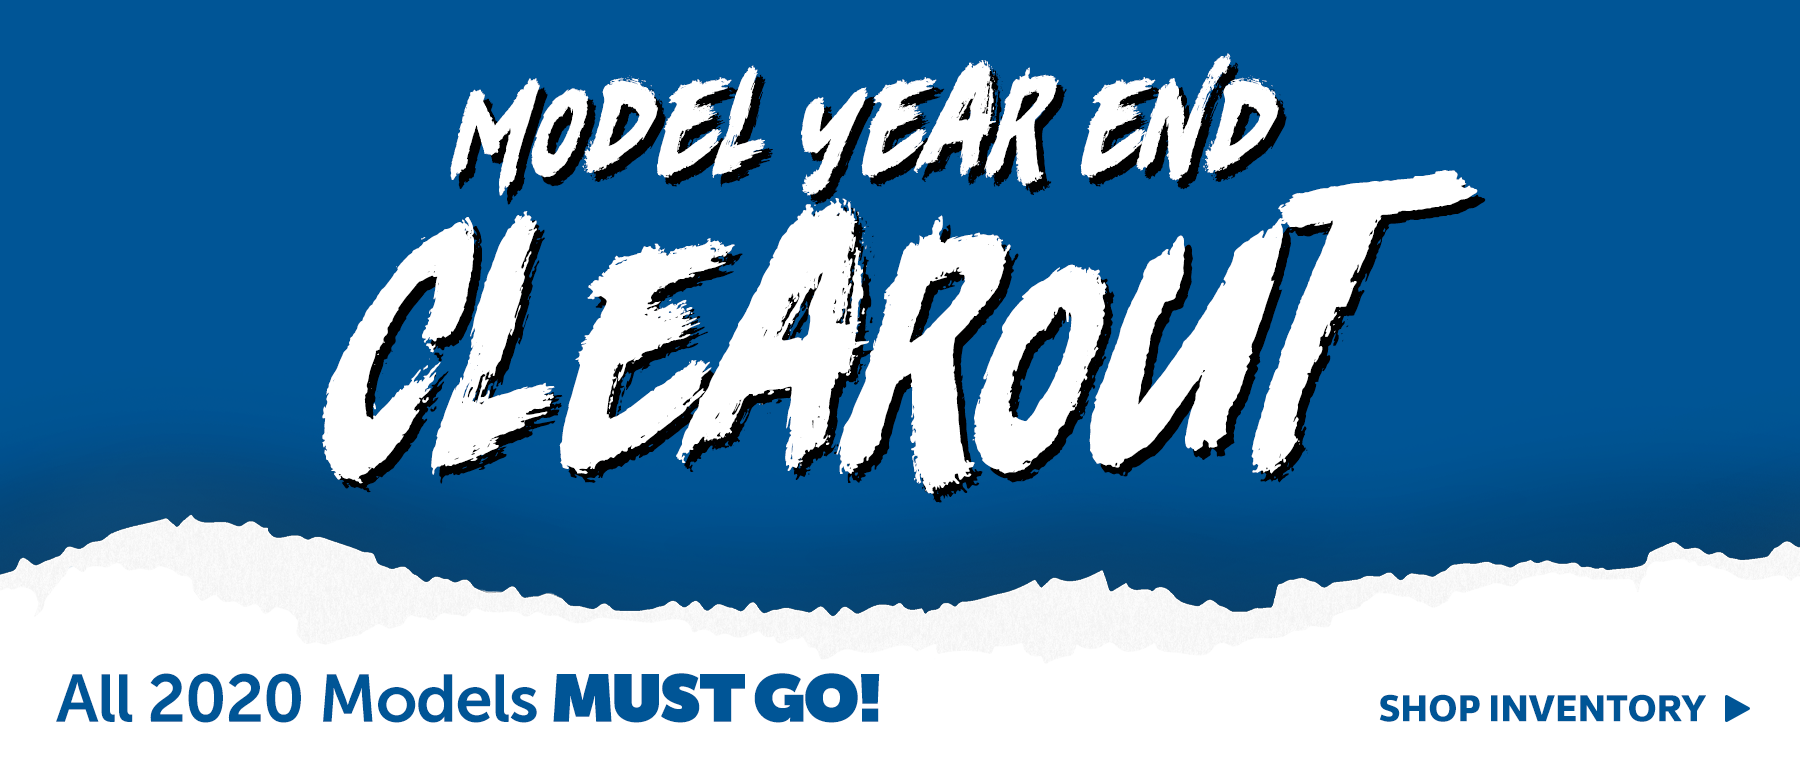 2020 Model Year End Clear Out